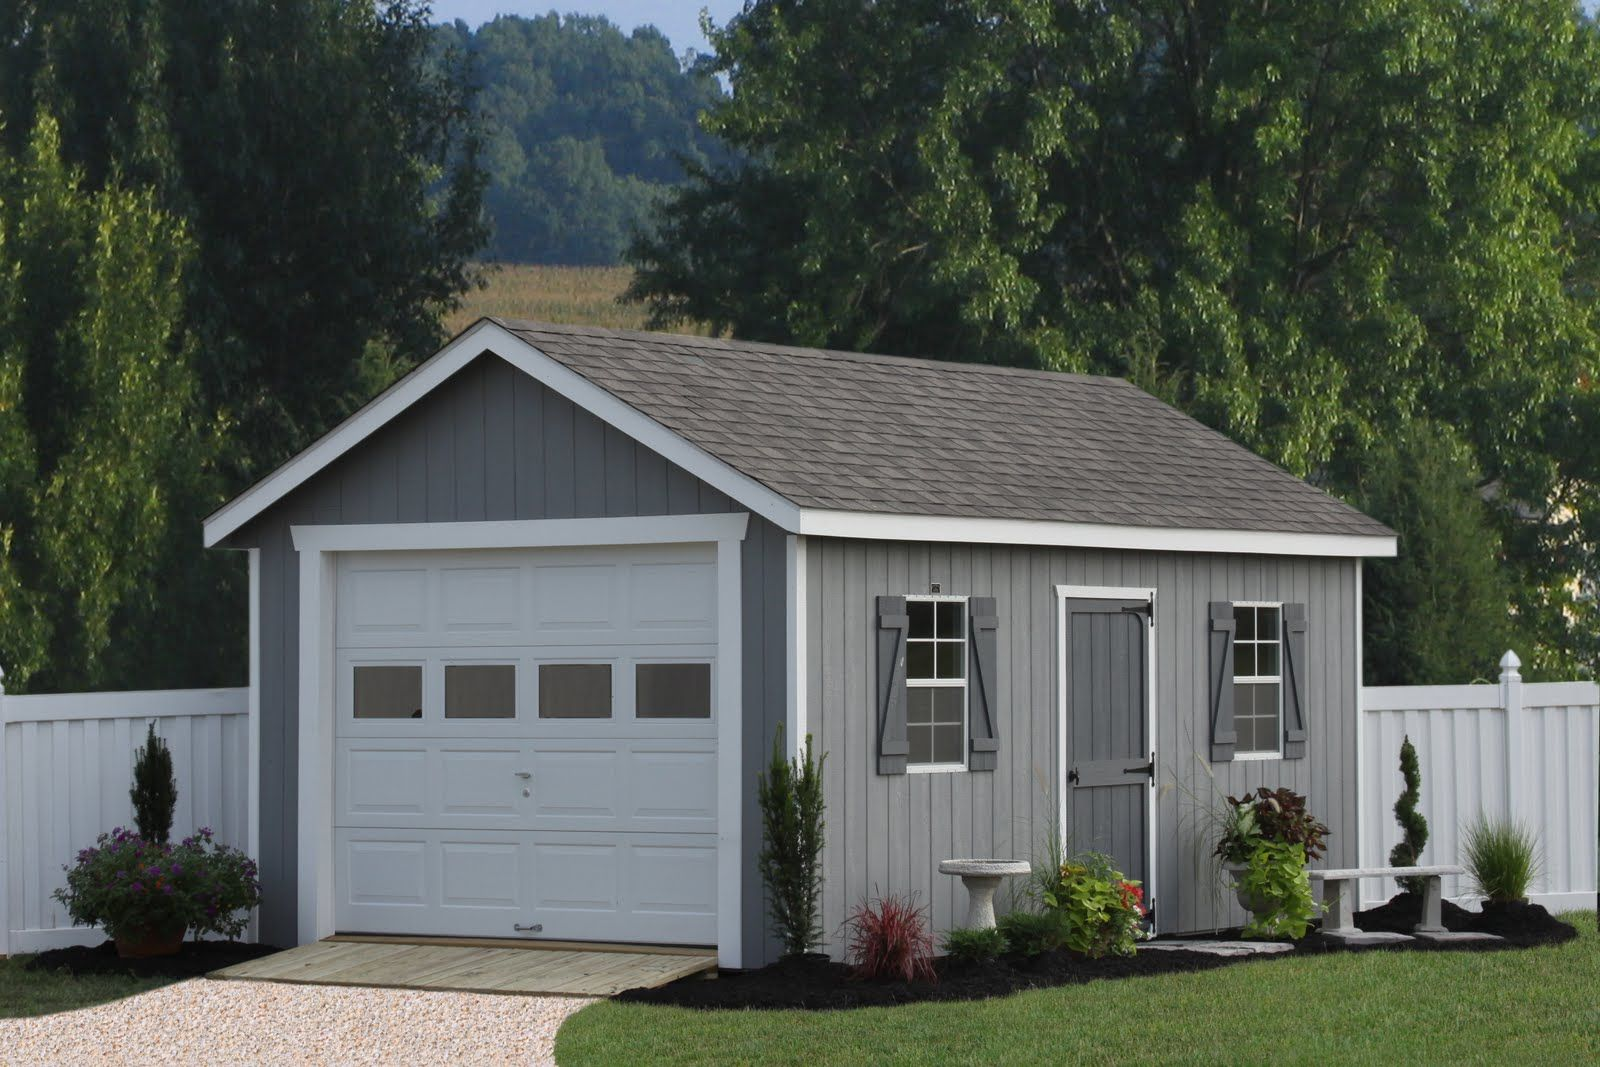 Add on garage plans 12x20 classic one car garage 1 car carport